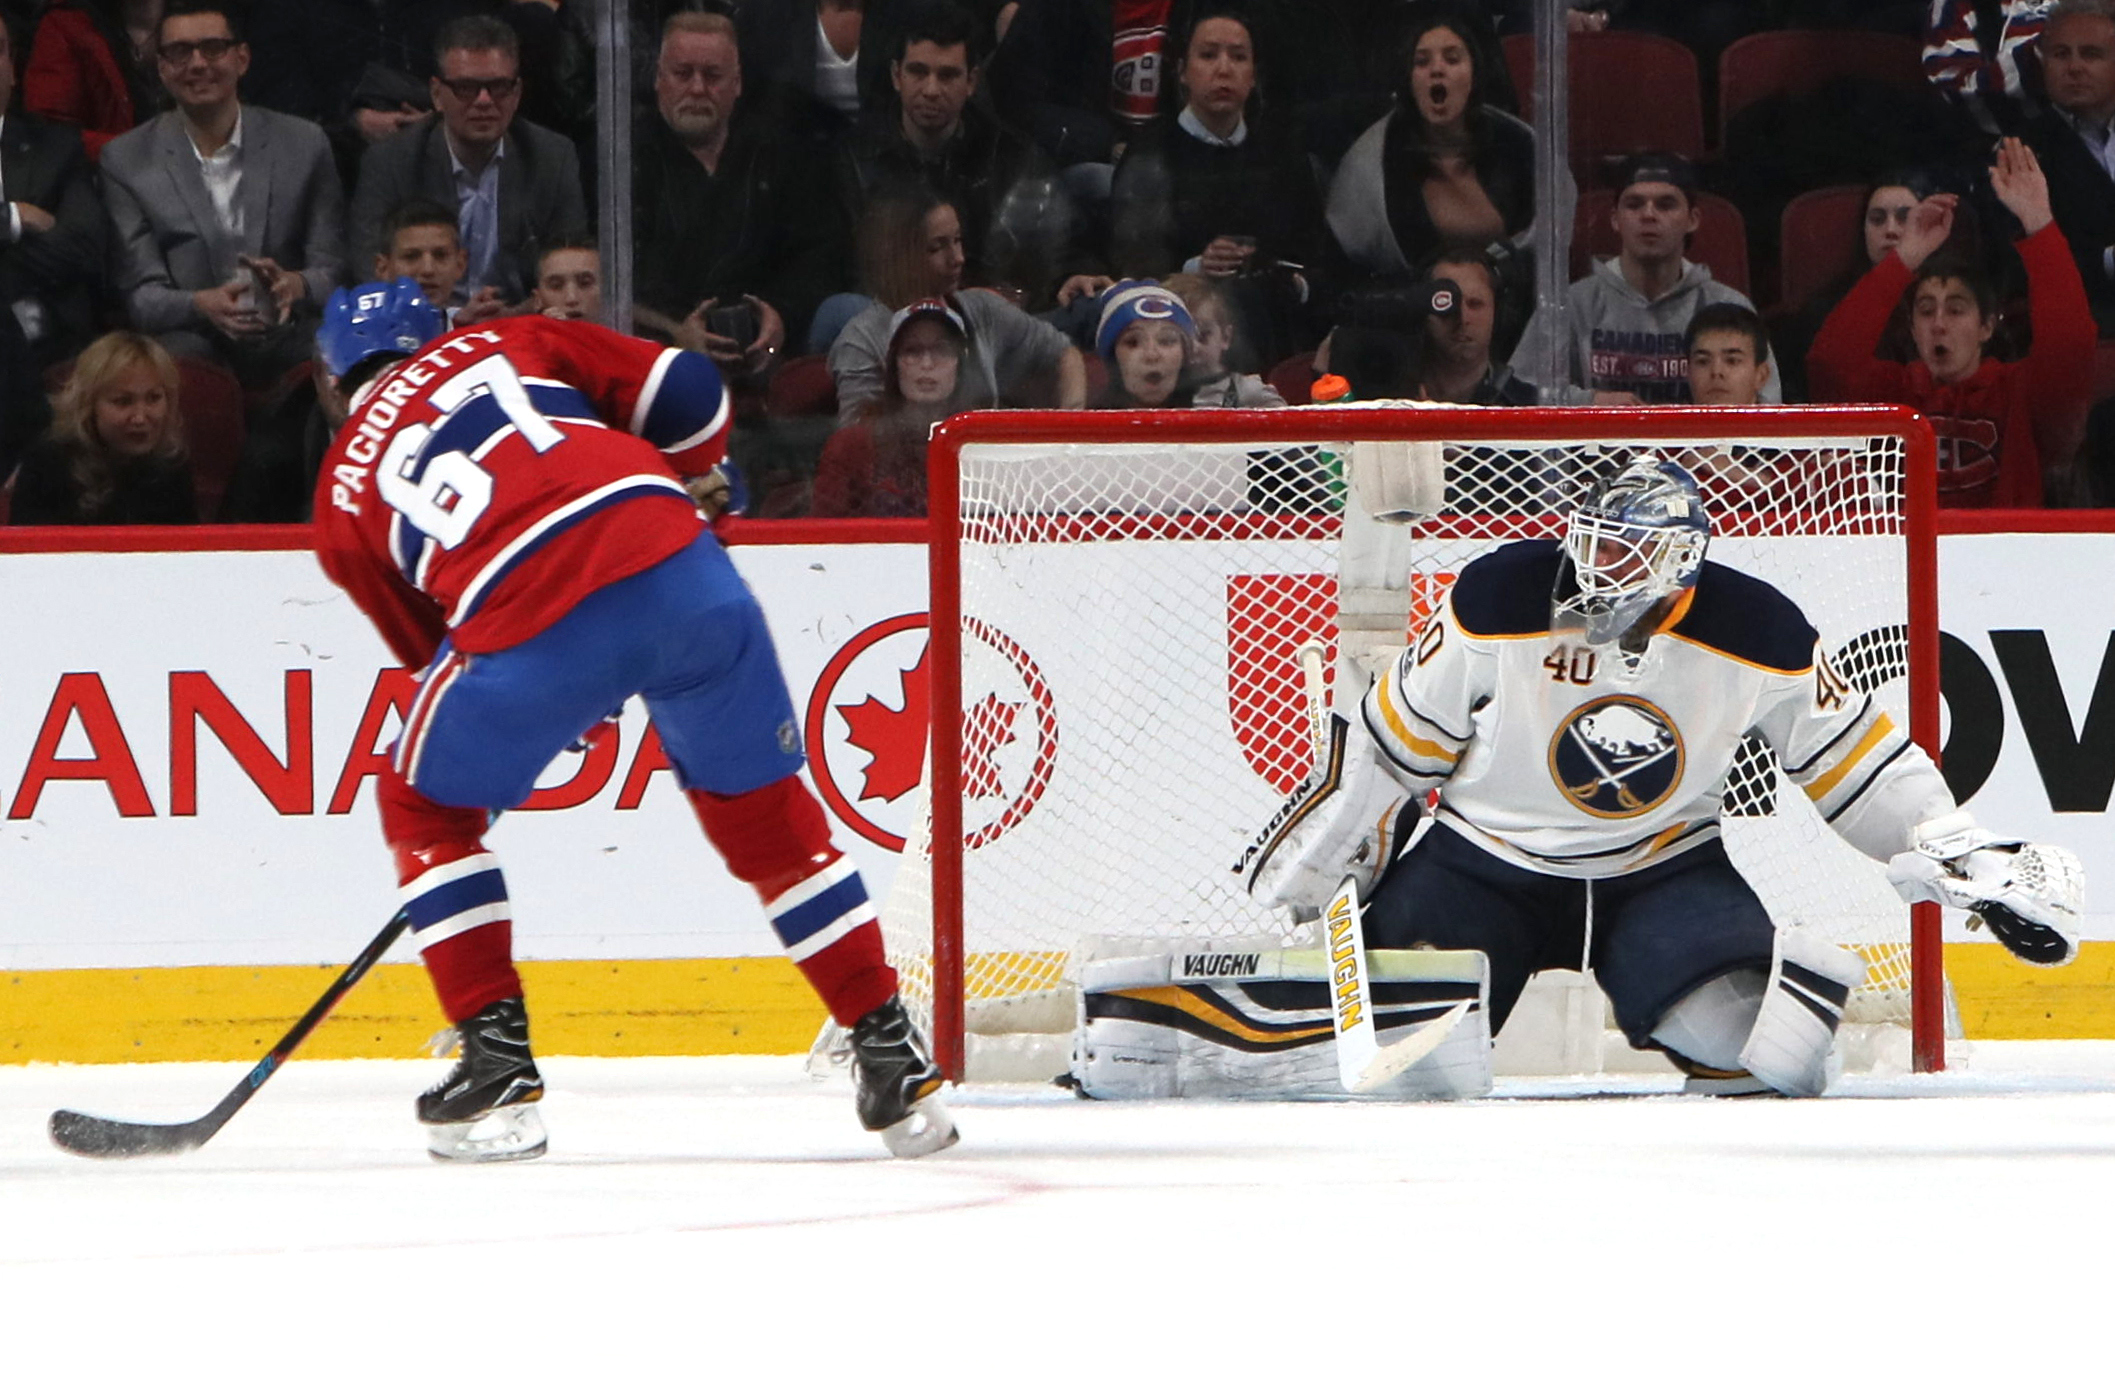 Montreal's Max Pacioretty scores one of his three goals against Buffalo goaltender Robin Lehner Tuesday at the Bell Centre. (Jean-Yves Ahern/USA TODAY)